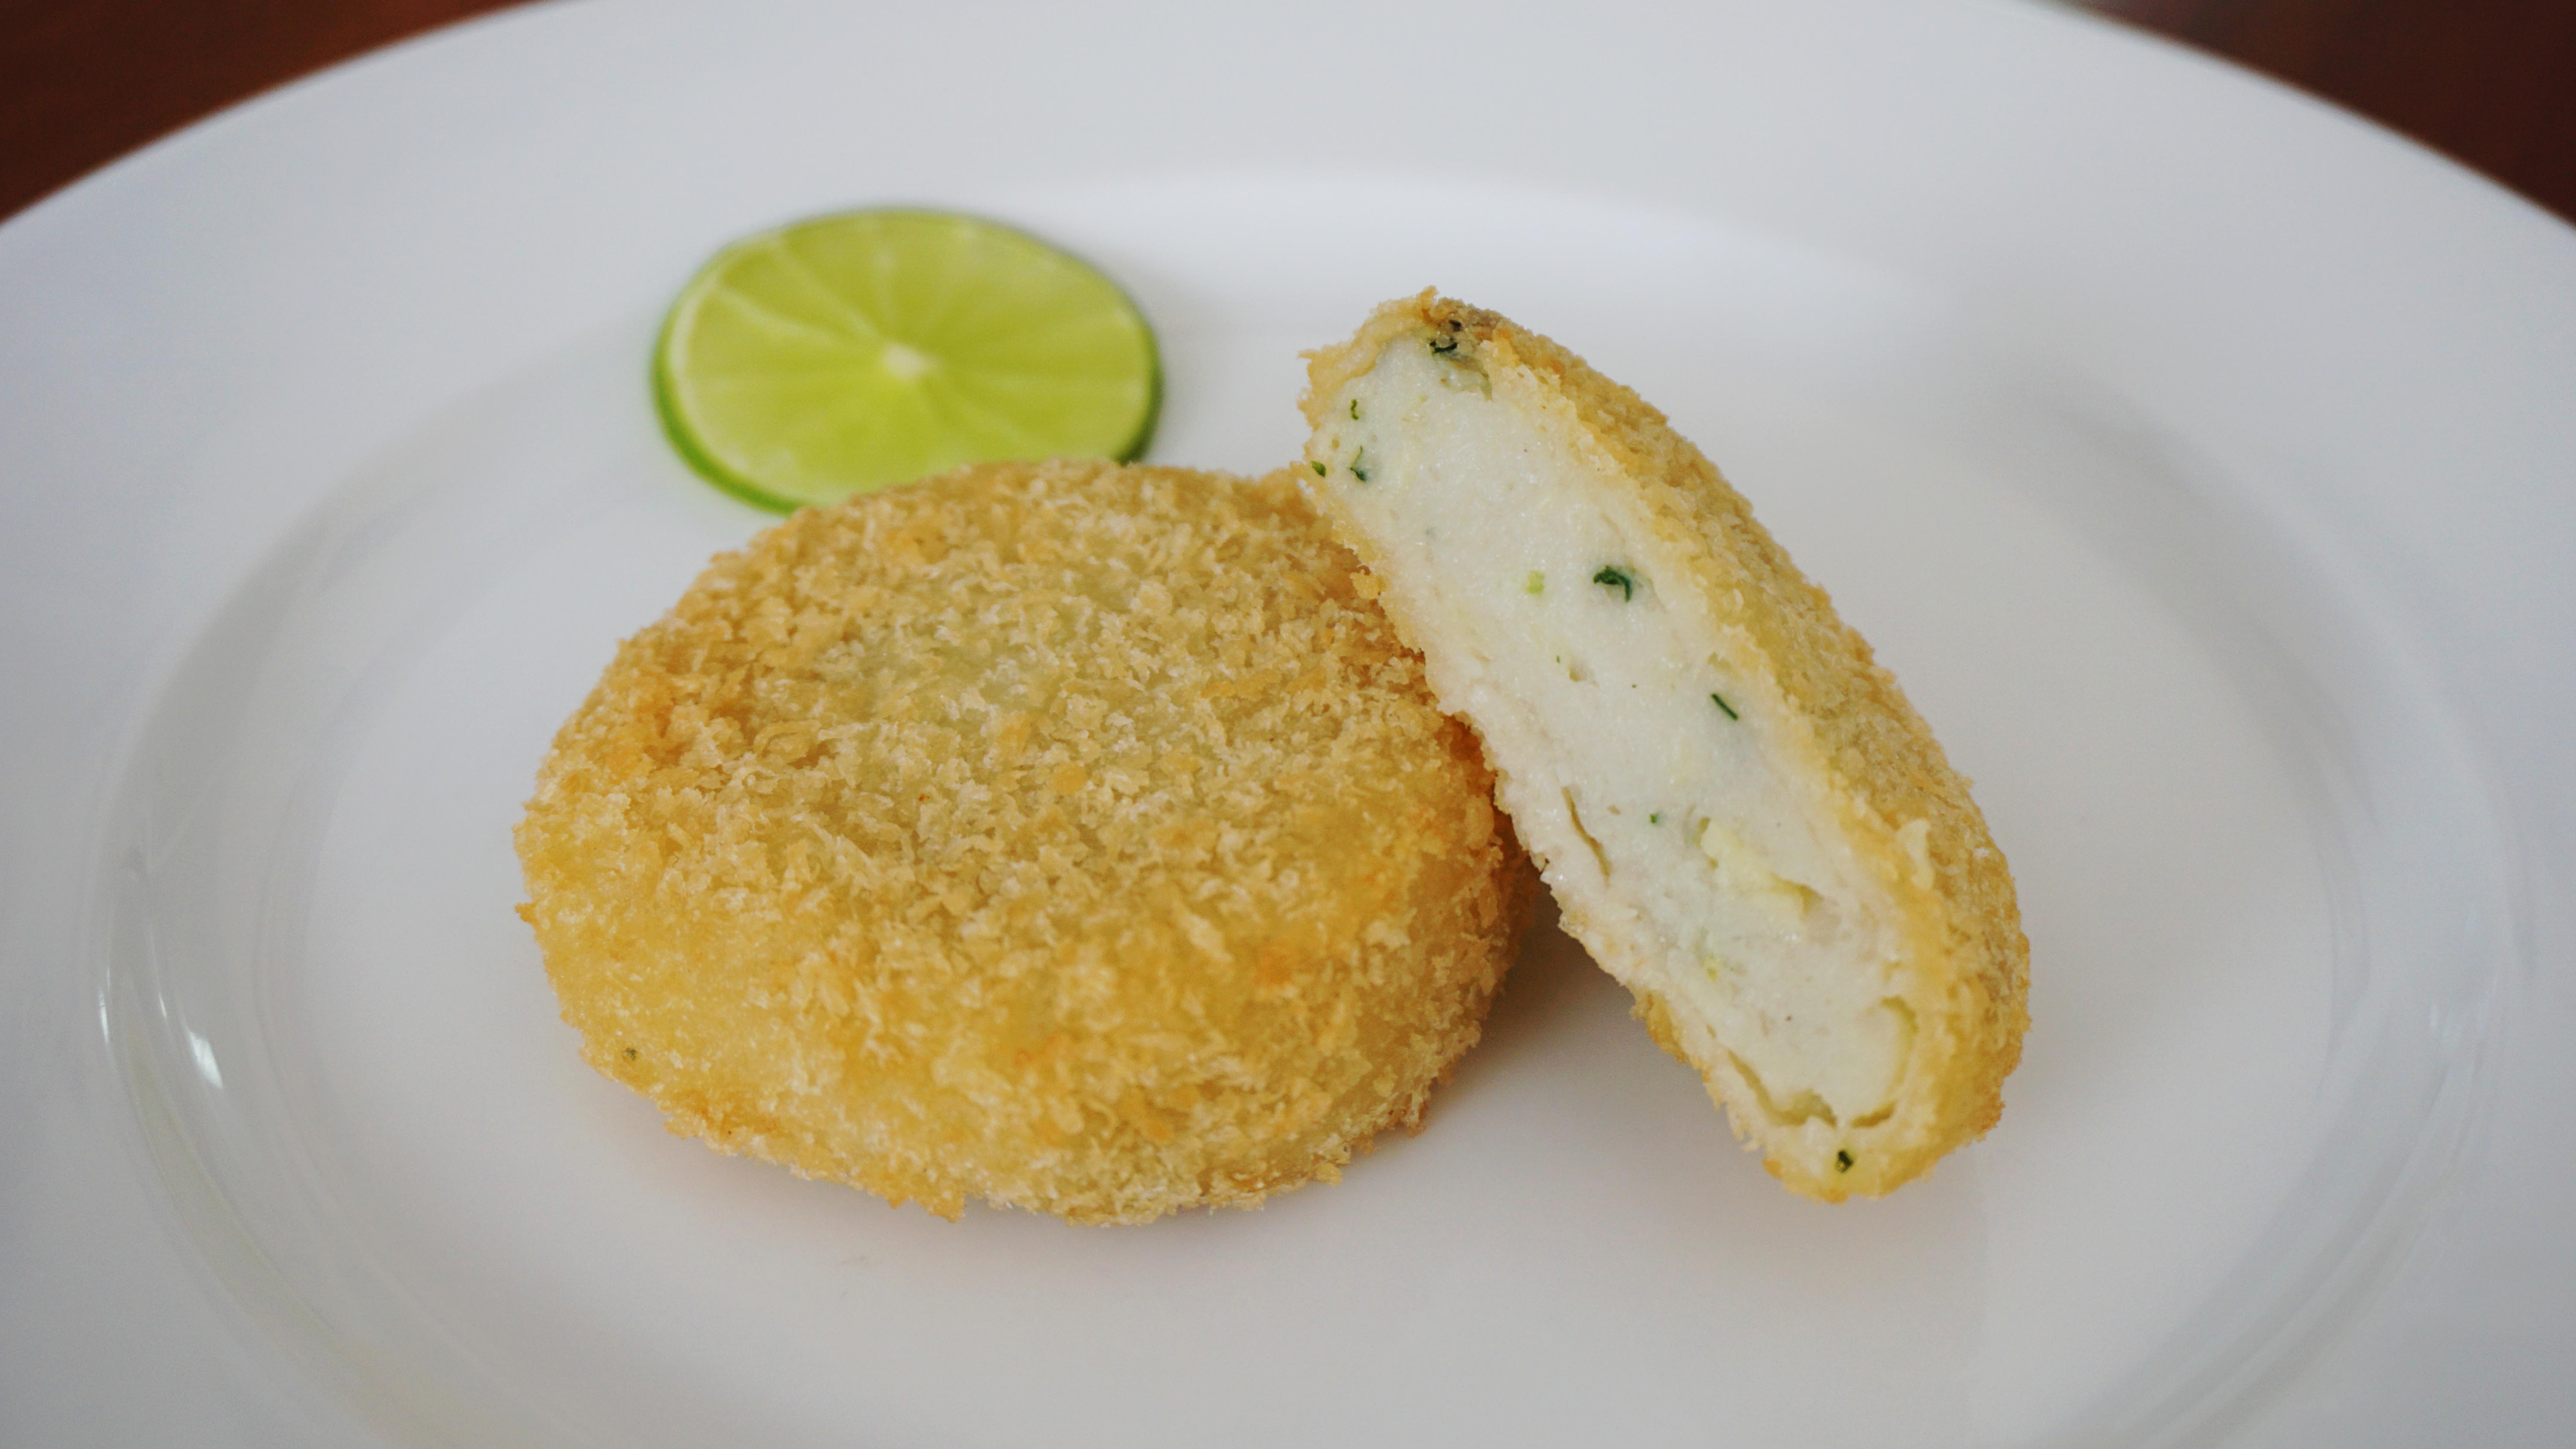 Breaded seafood filling